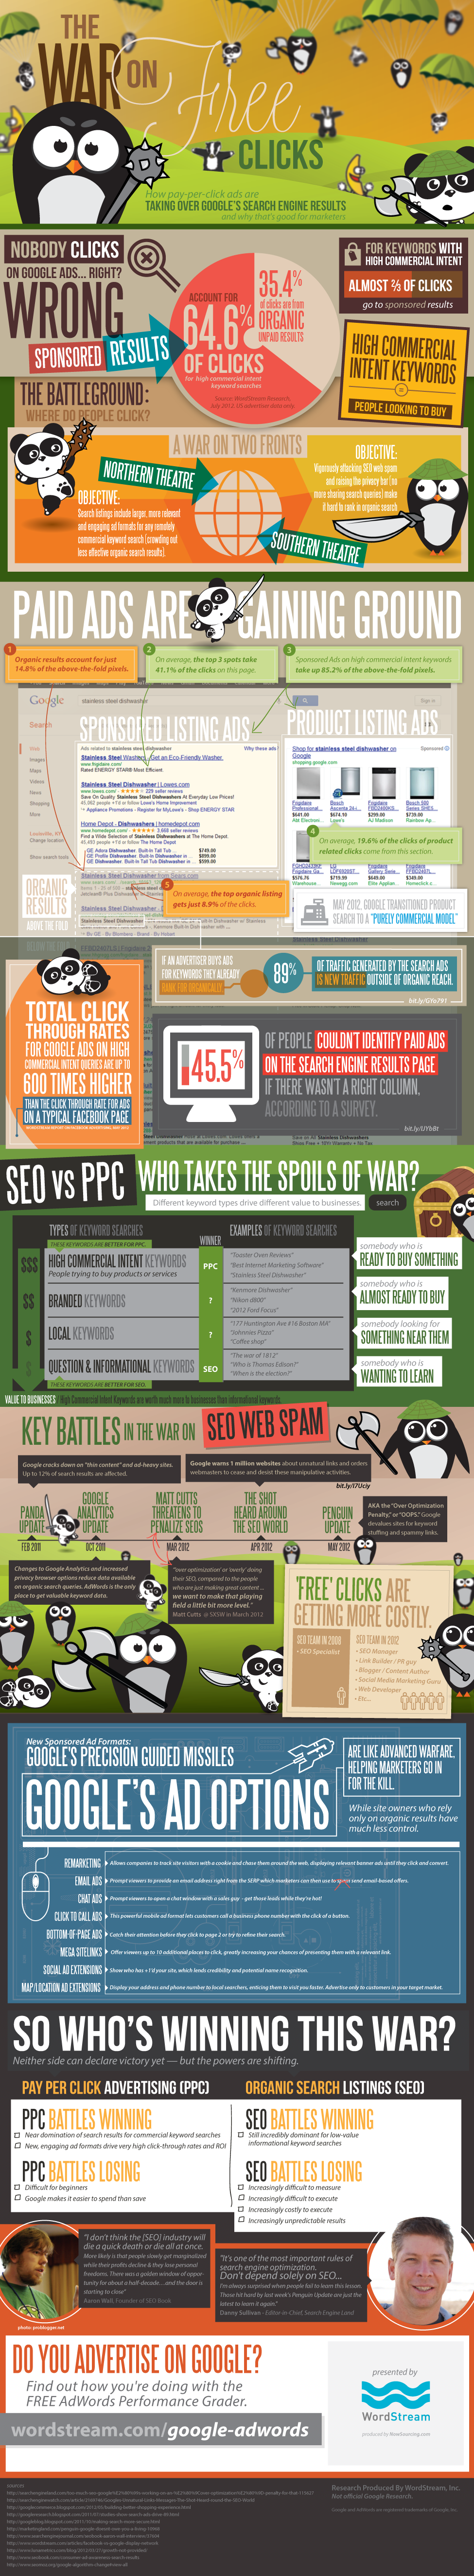 google ads vs organic results1 Google Ads Vs Organic Results [Infographic]